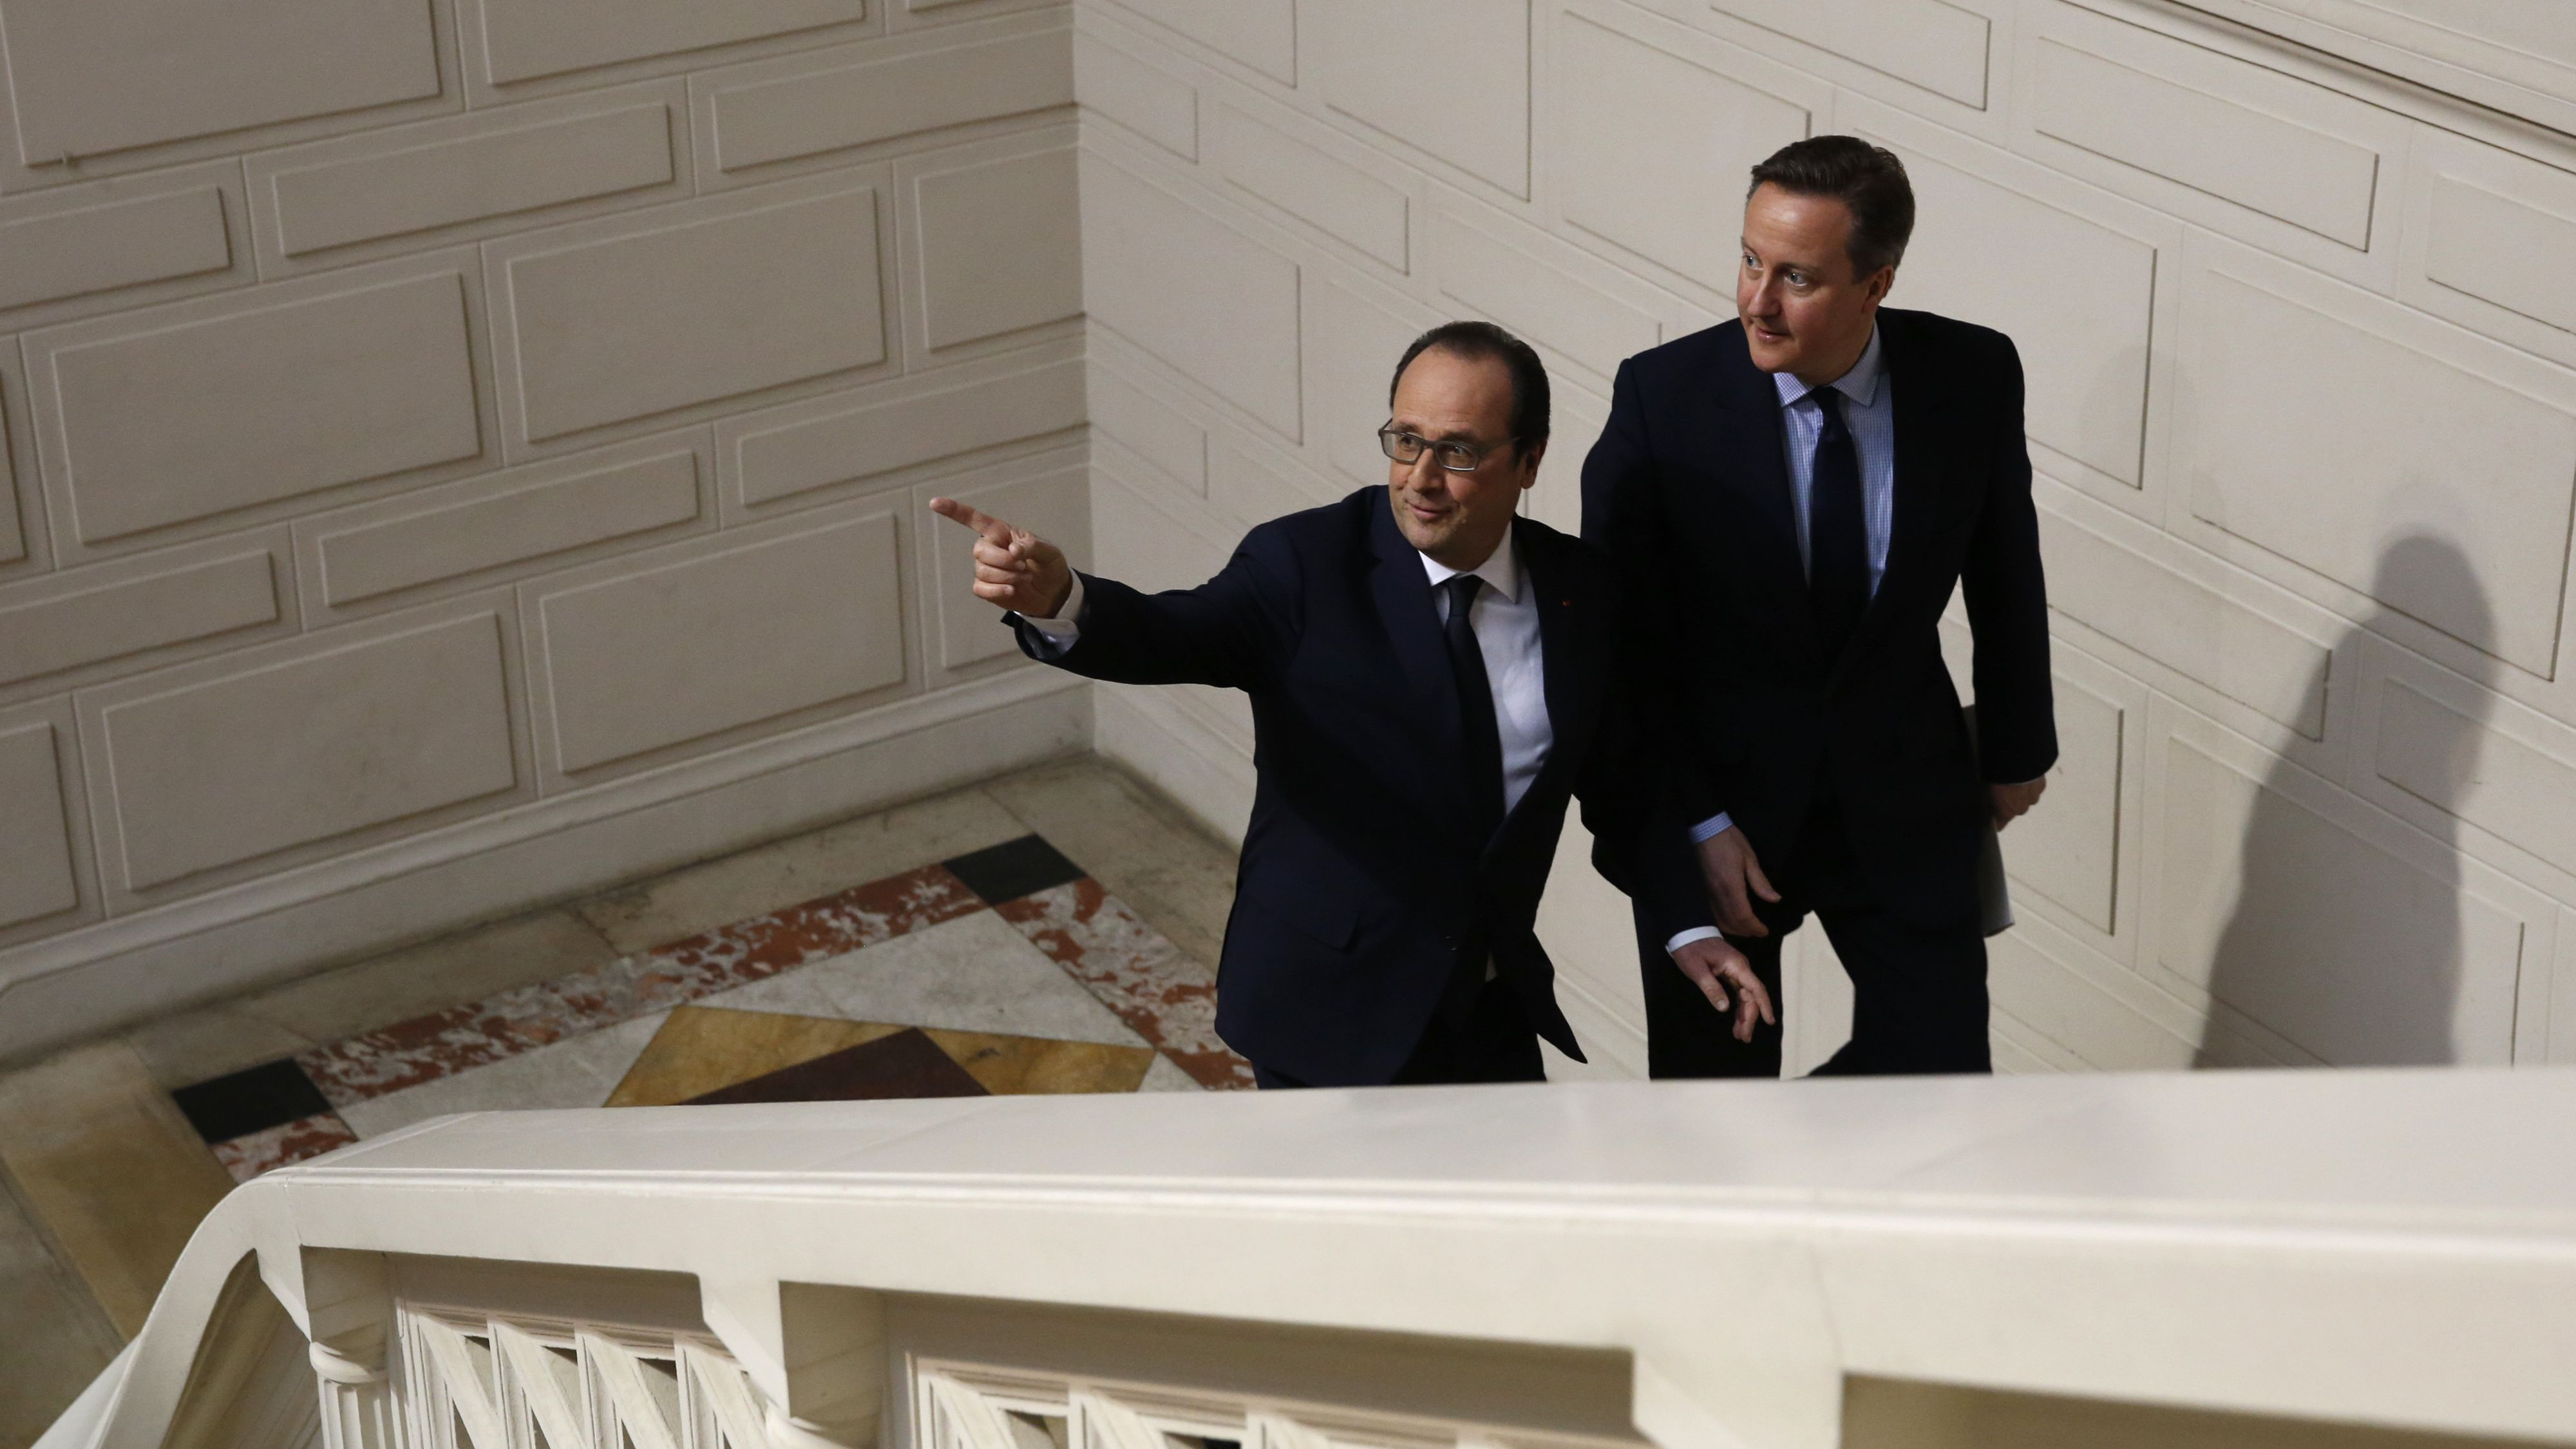 French President Francois Hollande (L) and Britain's Prime Minister David Cameron arrive to attend a joint news conference during a Franco-British summit in Amiens, northern France, March 3, 2016.